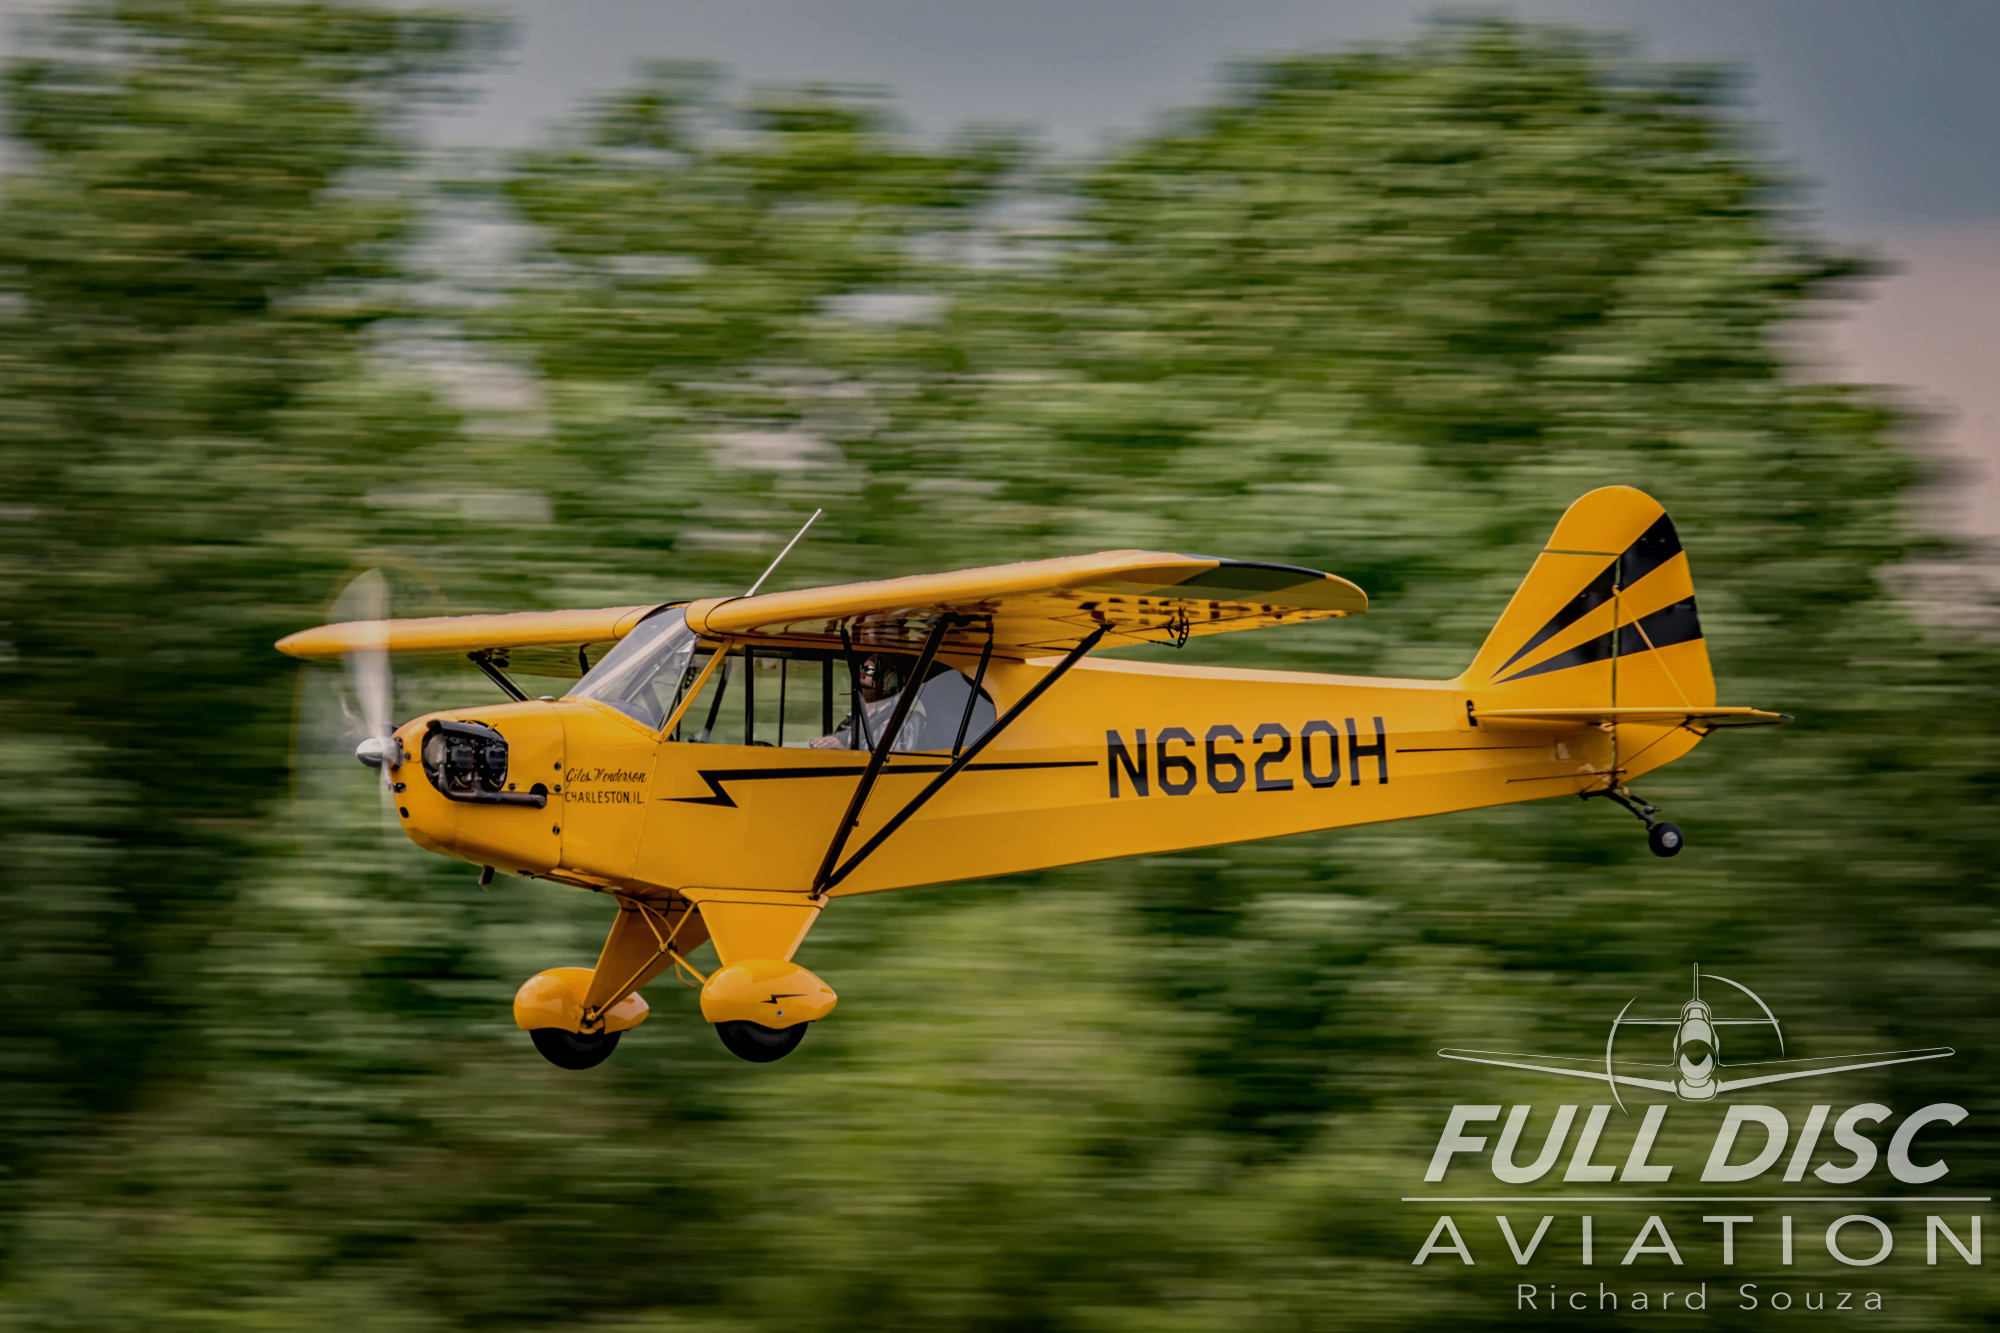 Greenwoodlake_FullDiscAviation_RichardSouza_2.jpg